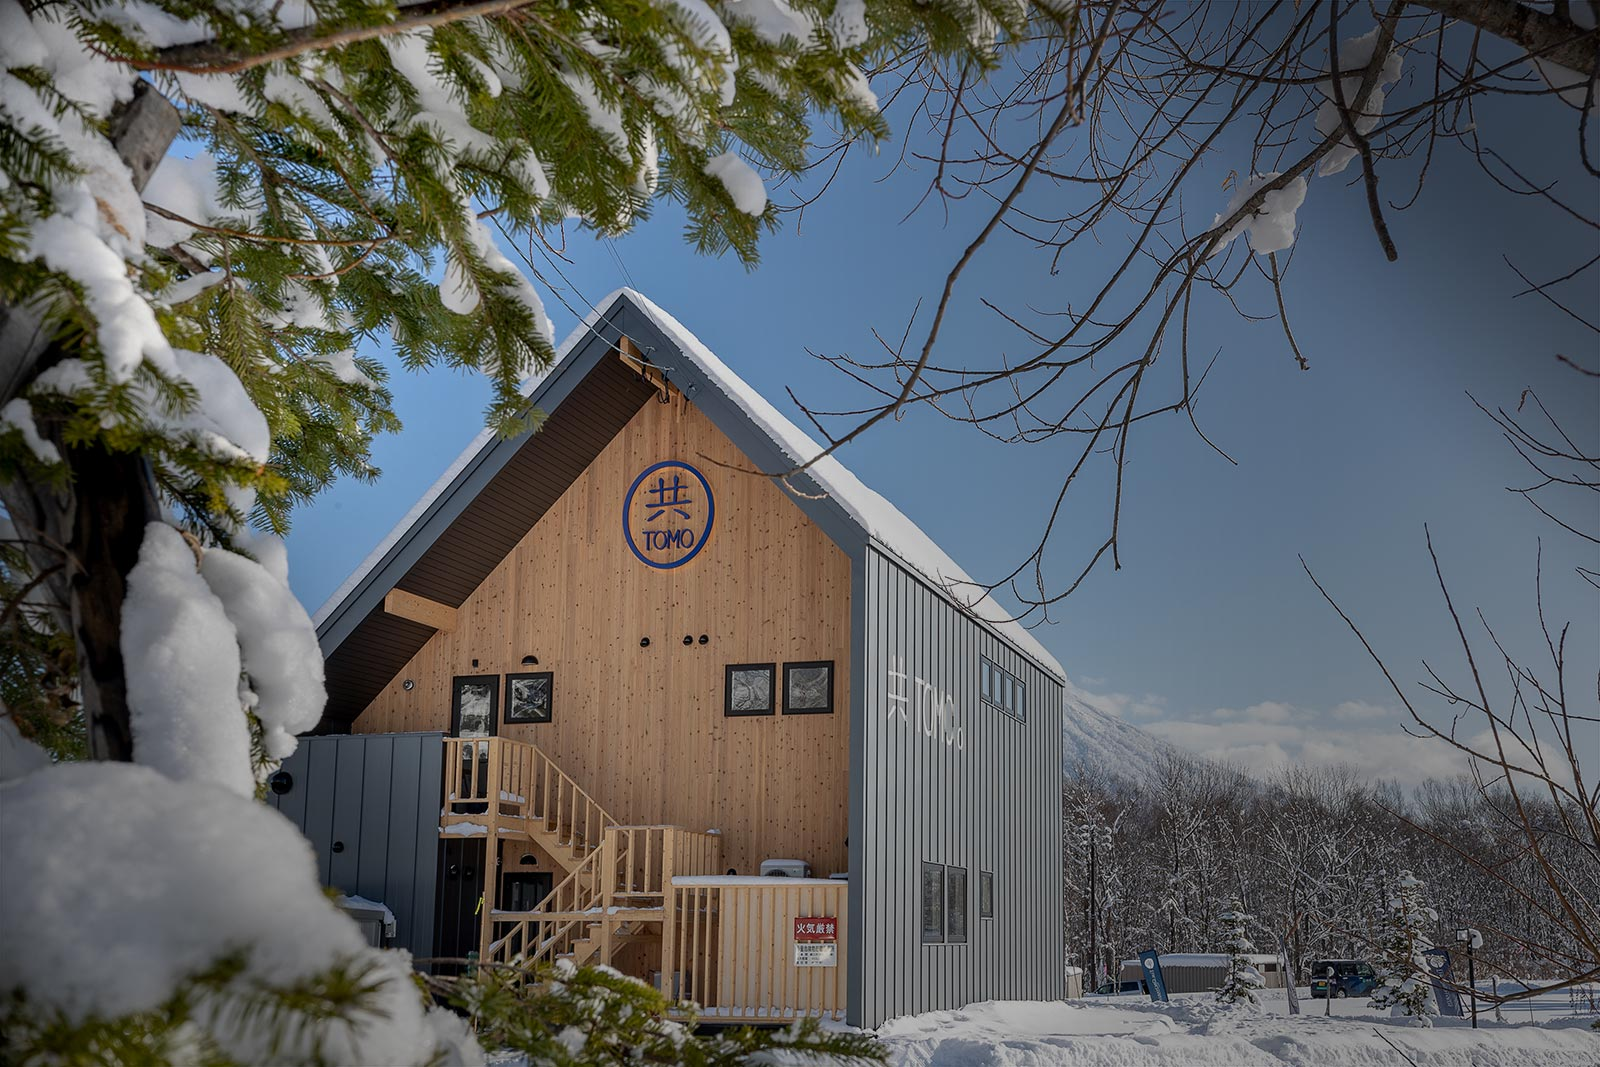 Exterior view of the back of Tomo restaurant with snow and trees in view